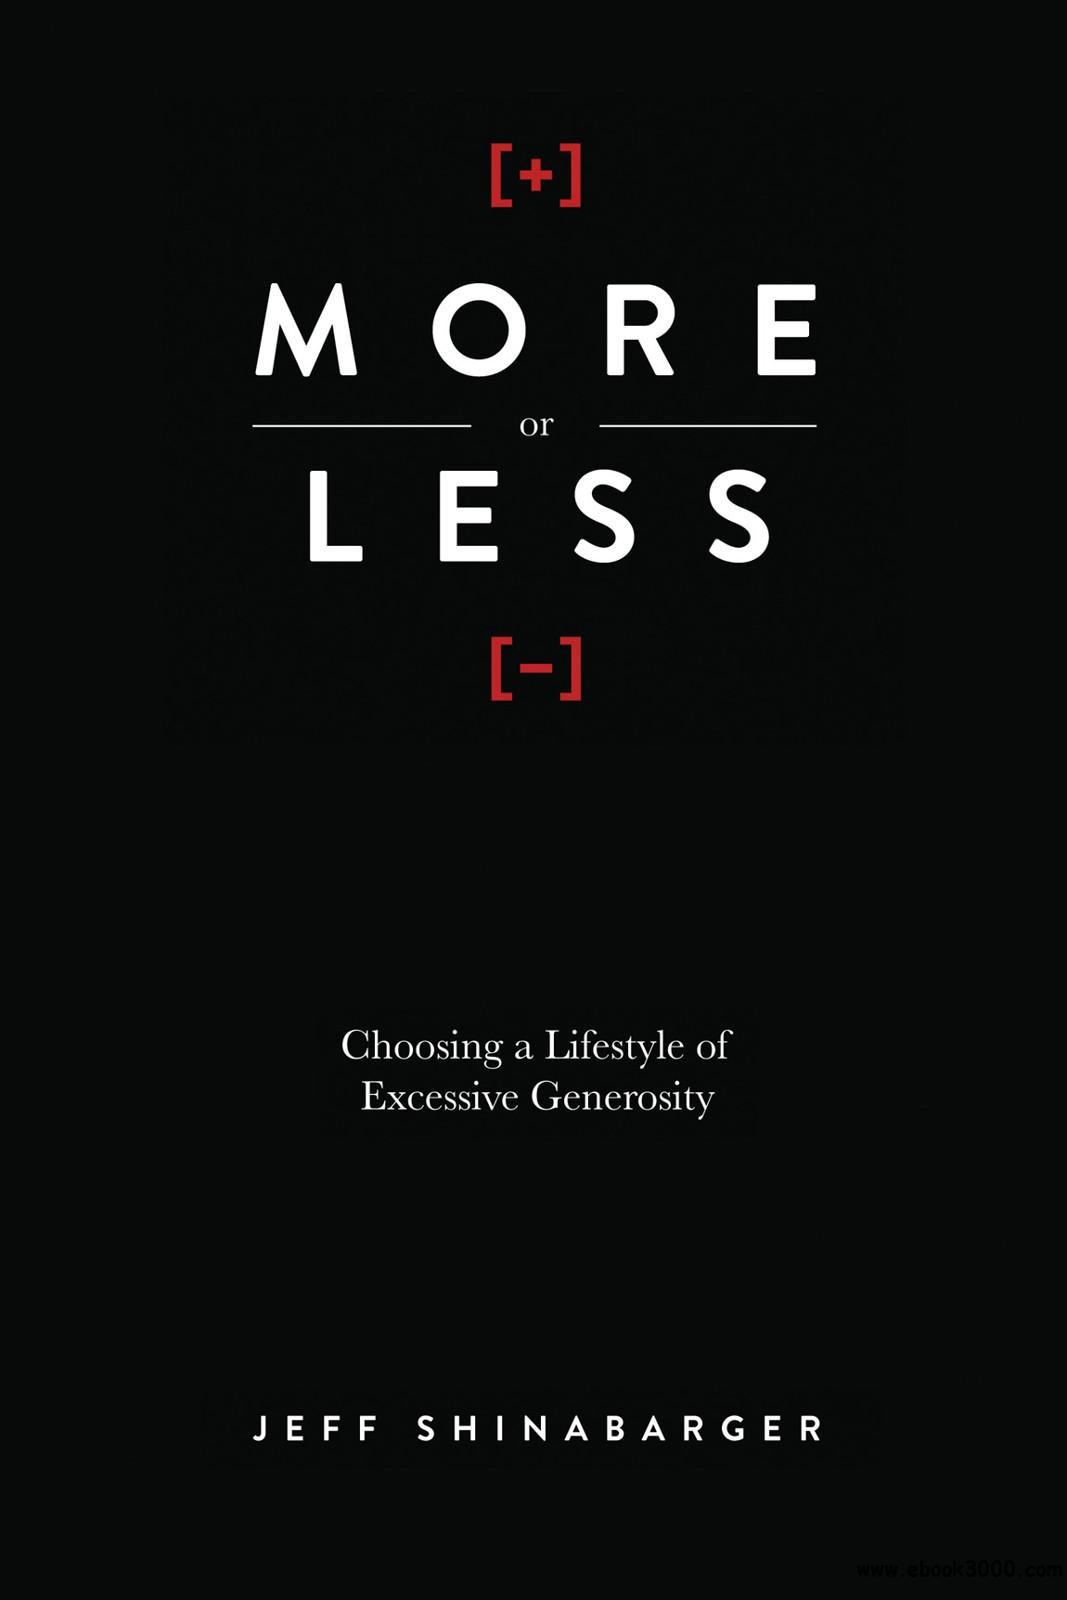 More or Less: Choosing a Lifestyle of Excessive Generosity free download